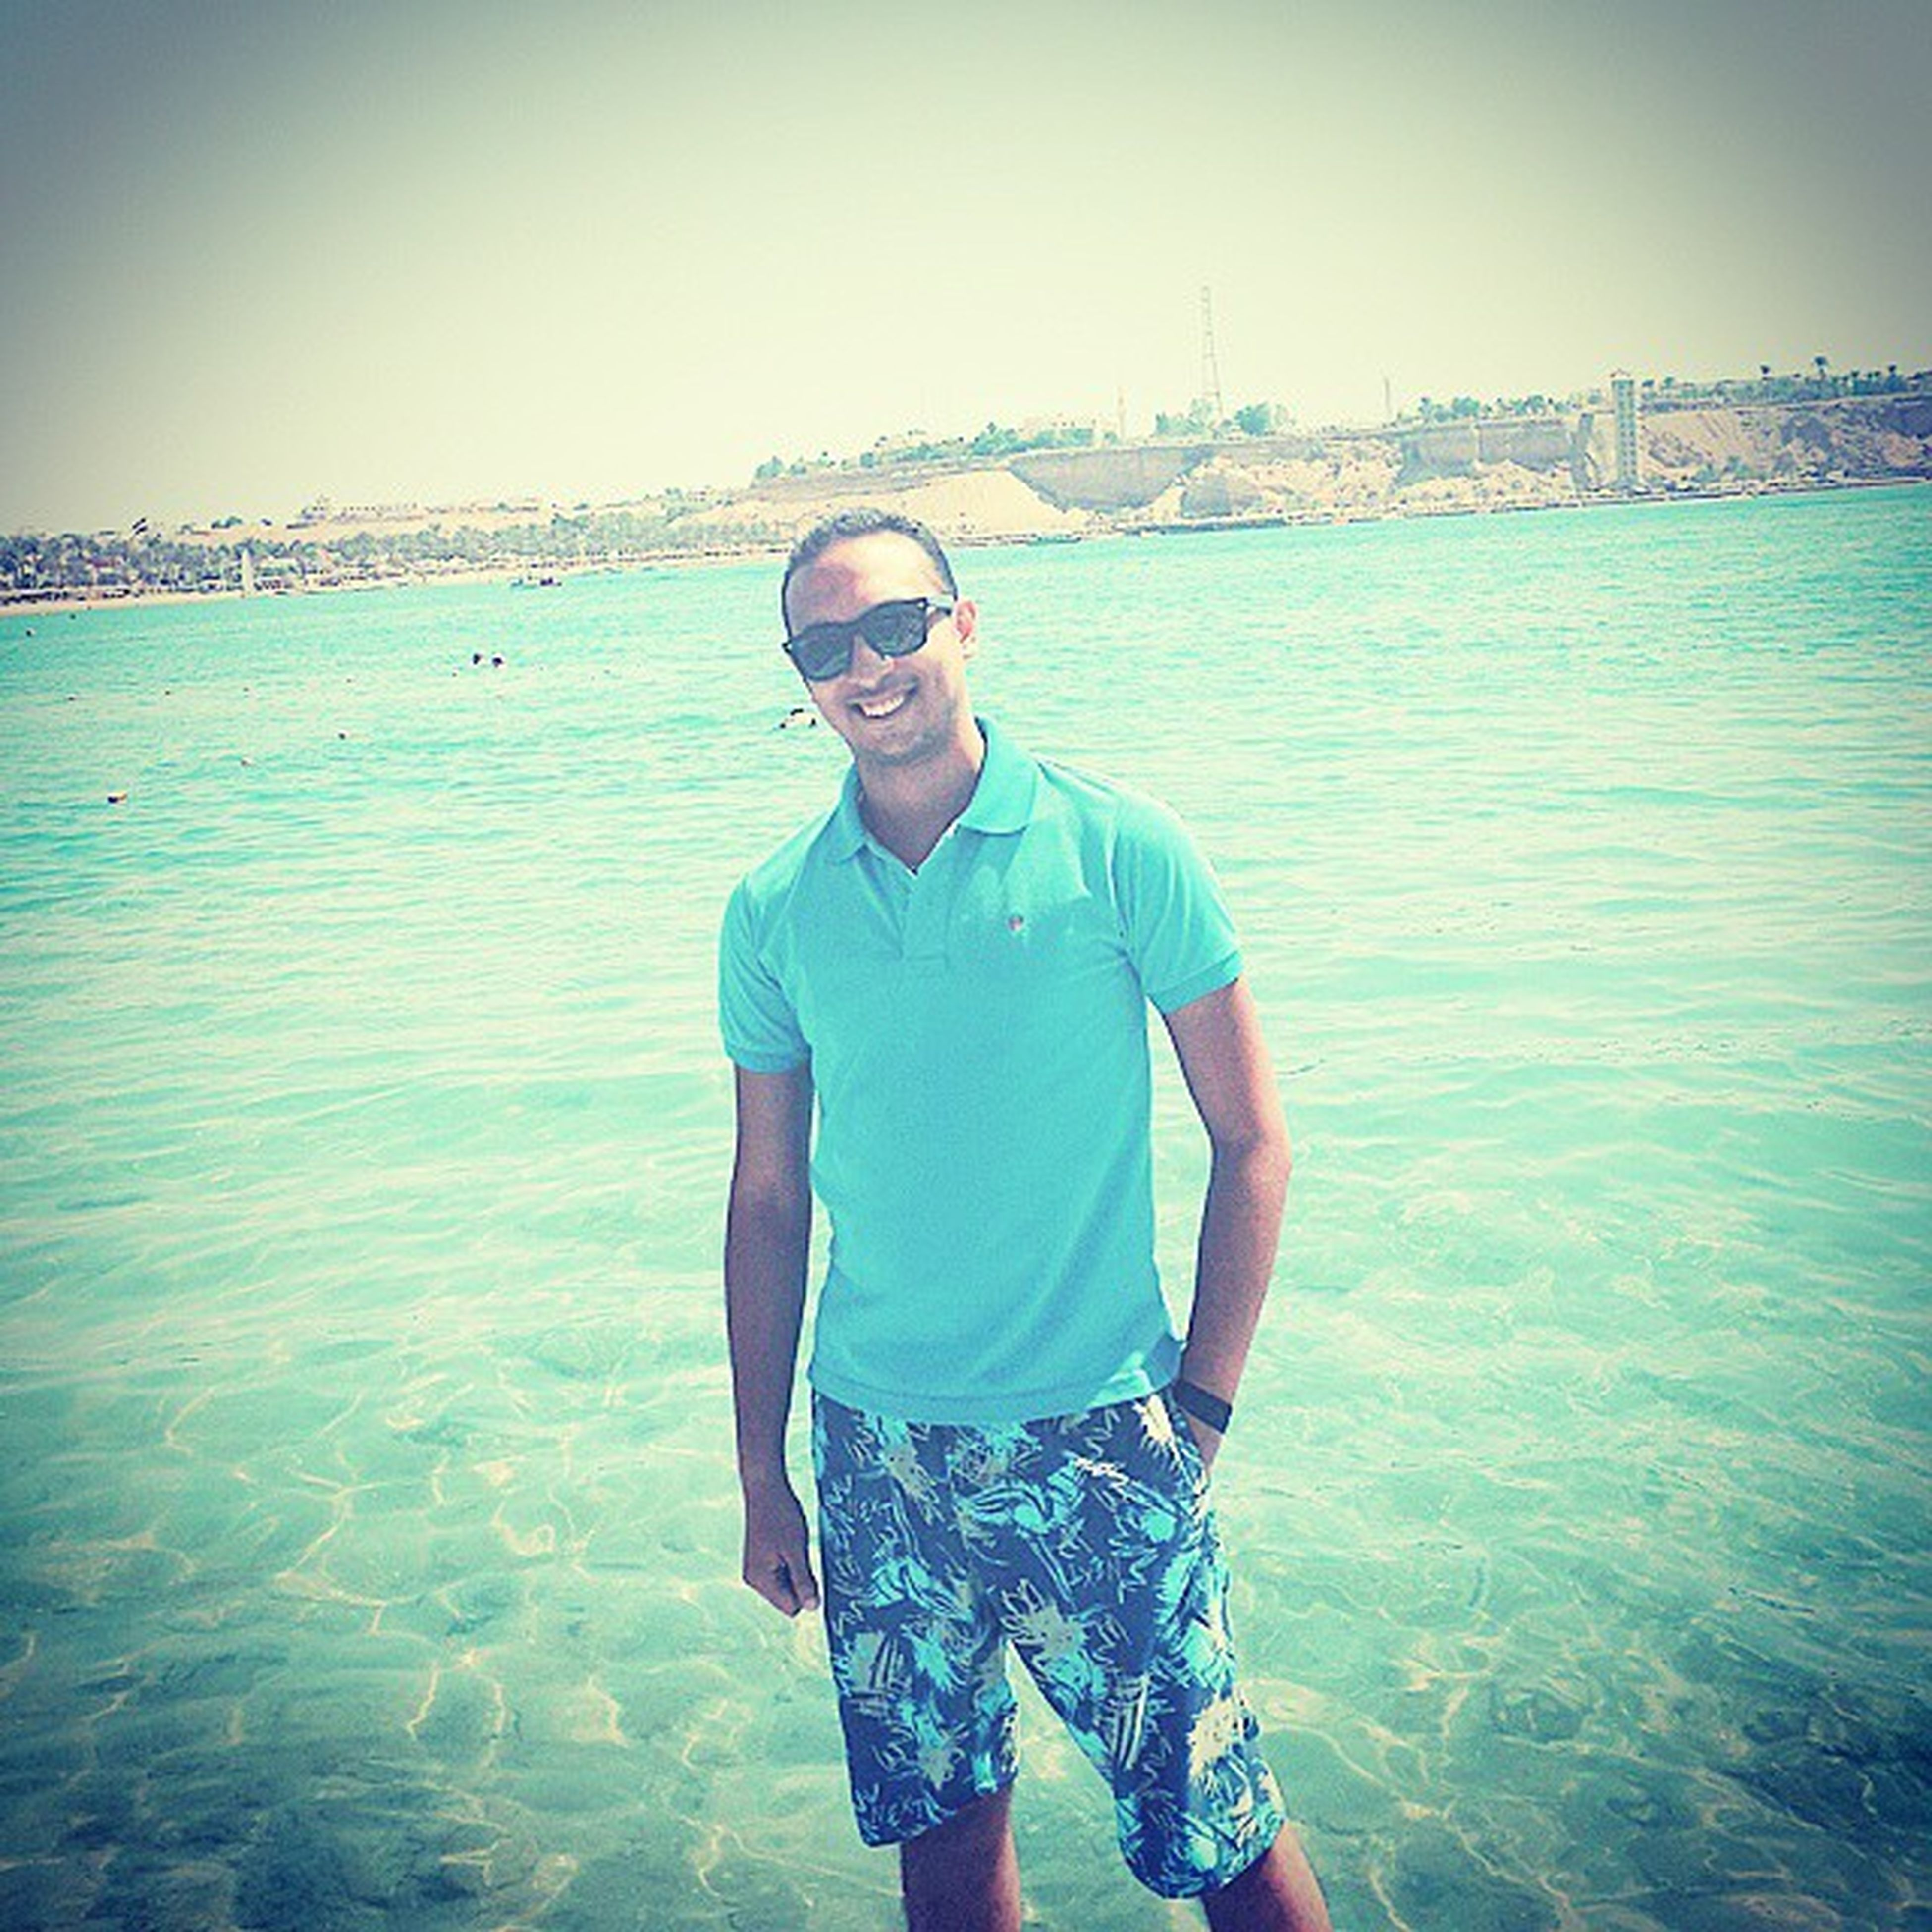 Beach Time Blue Relax Instasummer sun summer_time fun_time likeforlike instafun